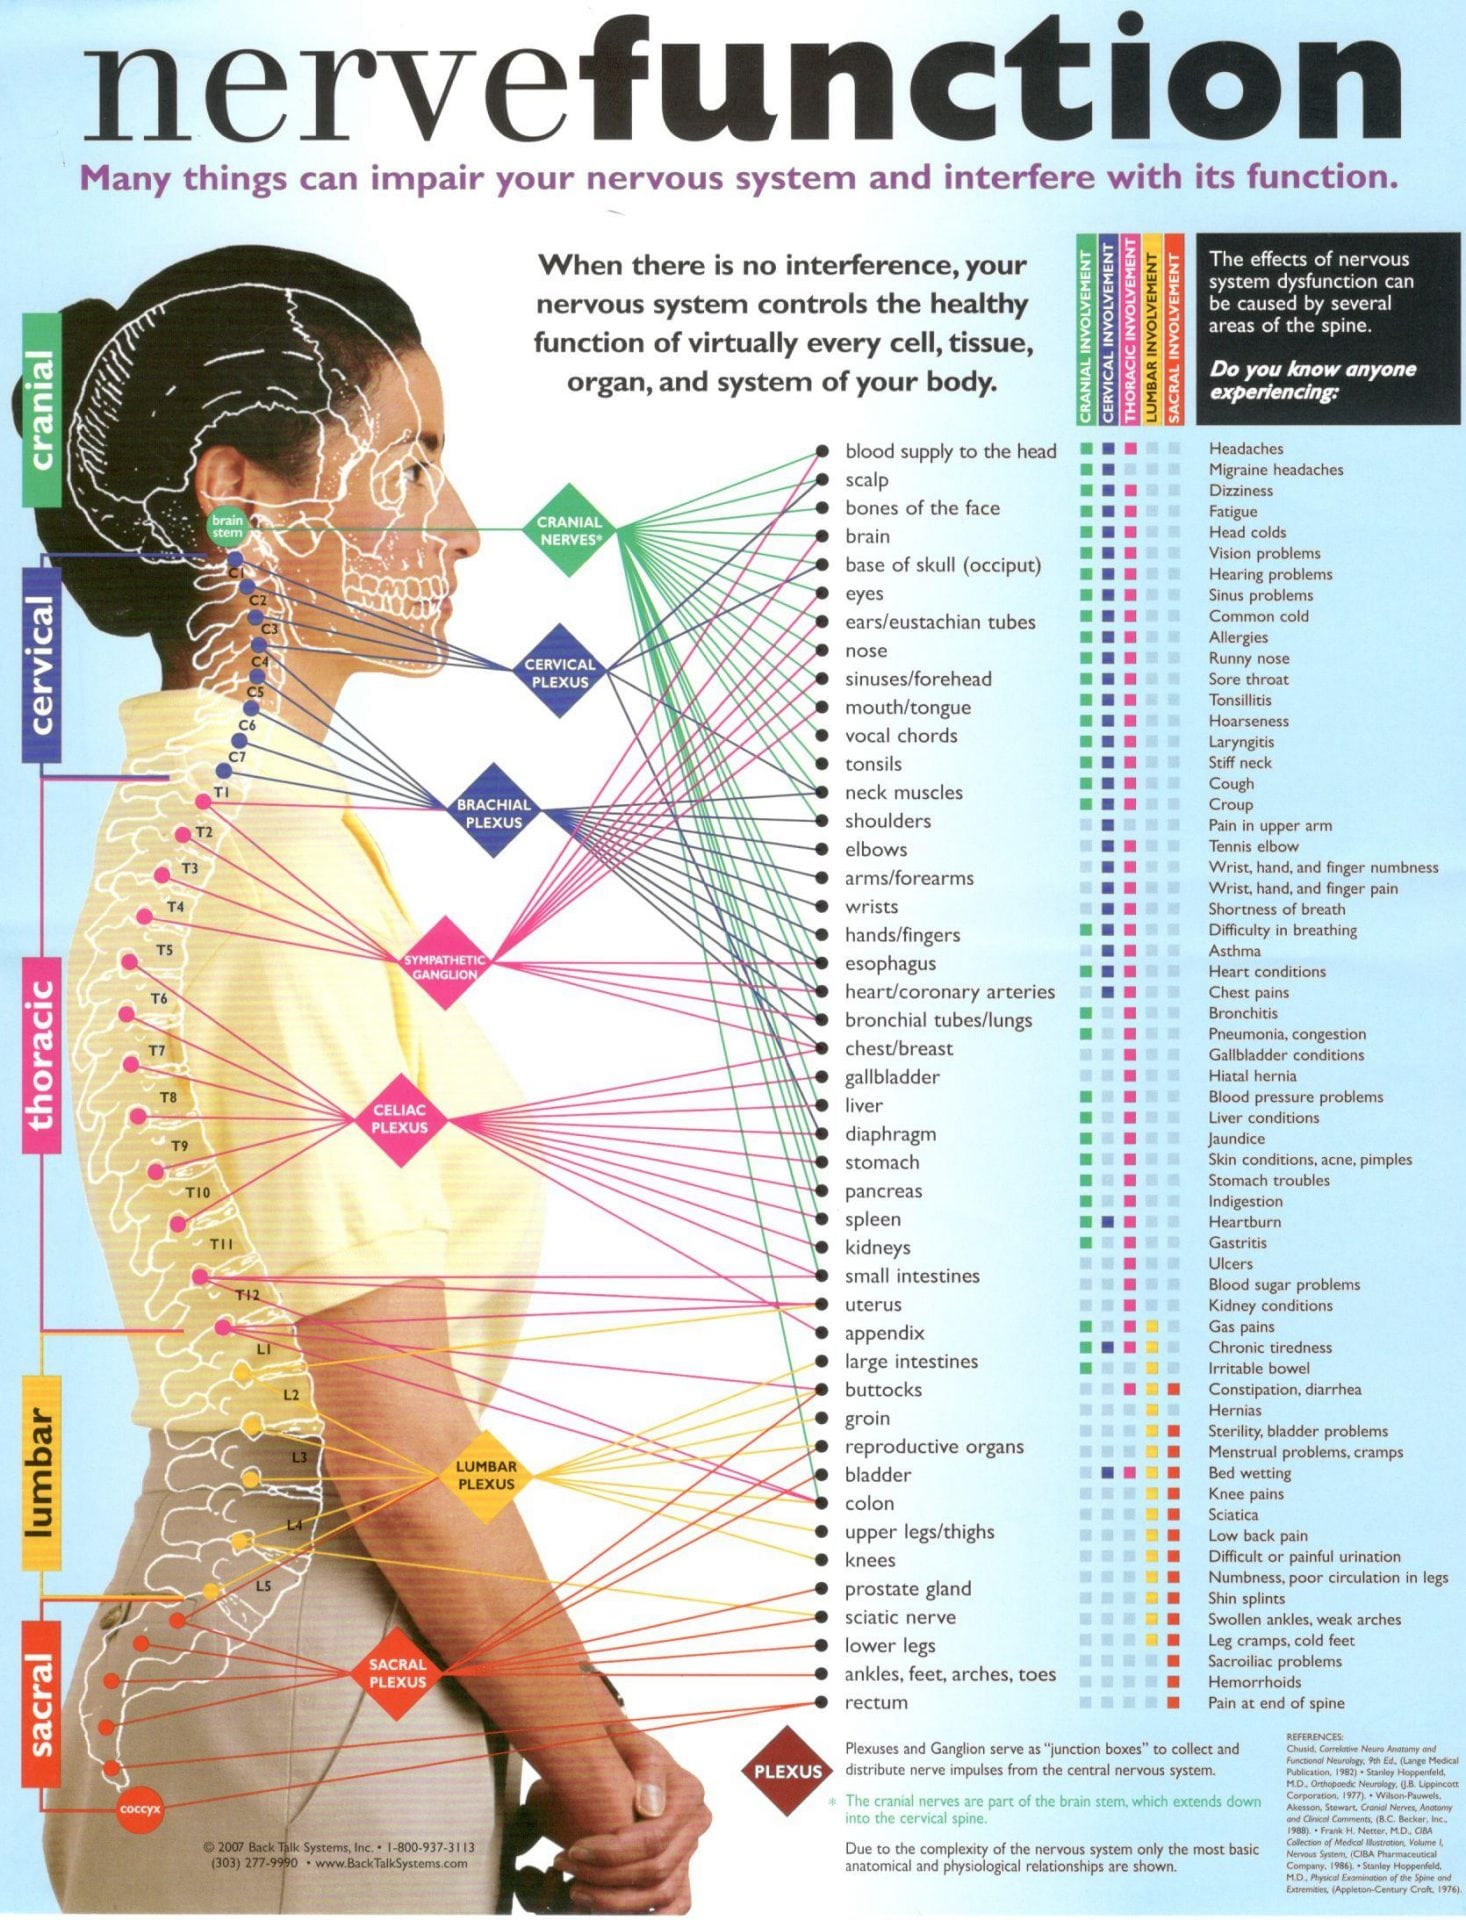 Whos Checking Your Breaker Box Dr Christine Hoch 1 Spinal Bones Work Something Like Electrical Breakers In A At Each Vertebral Level There Are Pair Of Nerves Coming Branching Off The